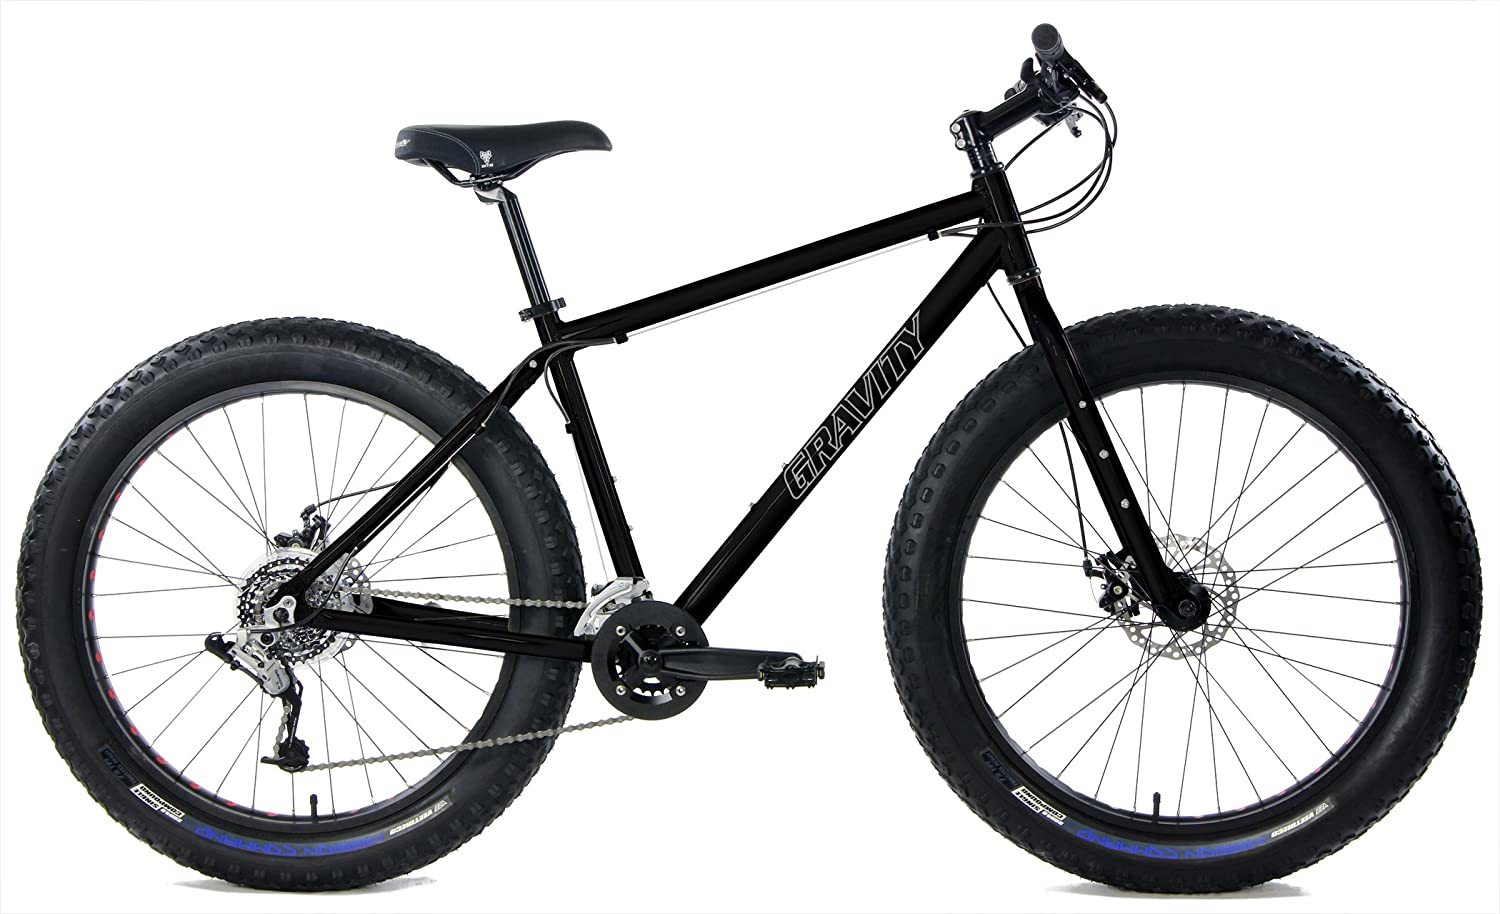 740a23156e1 Amazon.com   Aluminum Fat Bikes with Powerful Disc Brakes Gravity Monster  Mens Fat Tire Bicycle 26